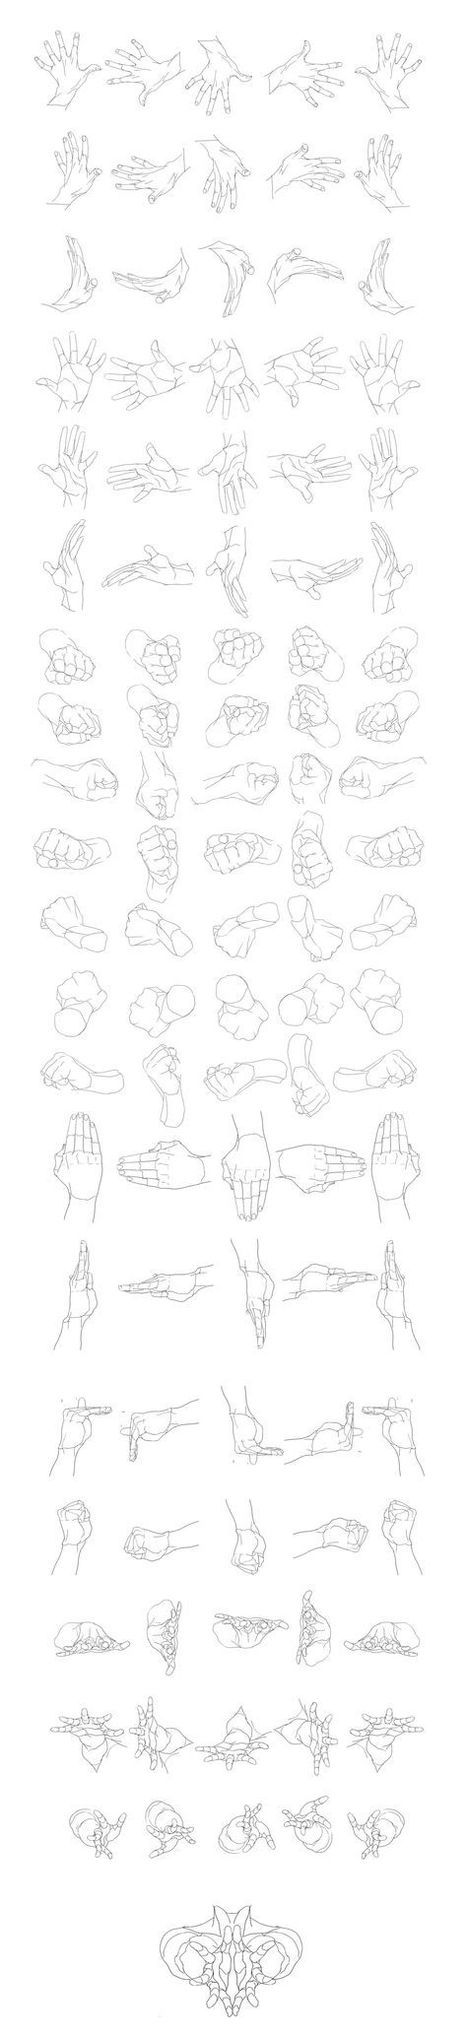 Hand Drawing Reference Guide | Drawing References and Resources | Scoop.it